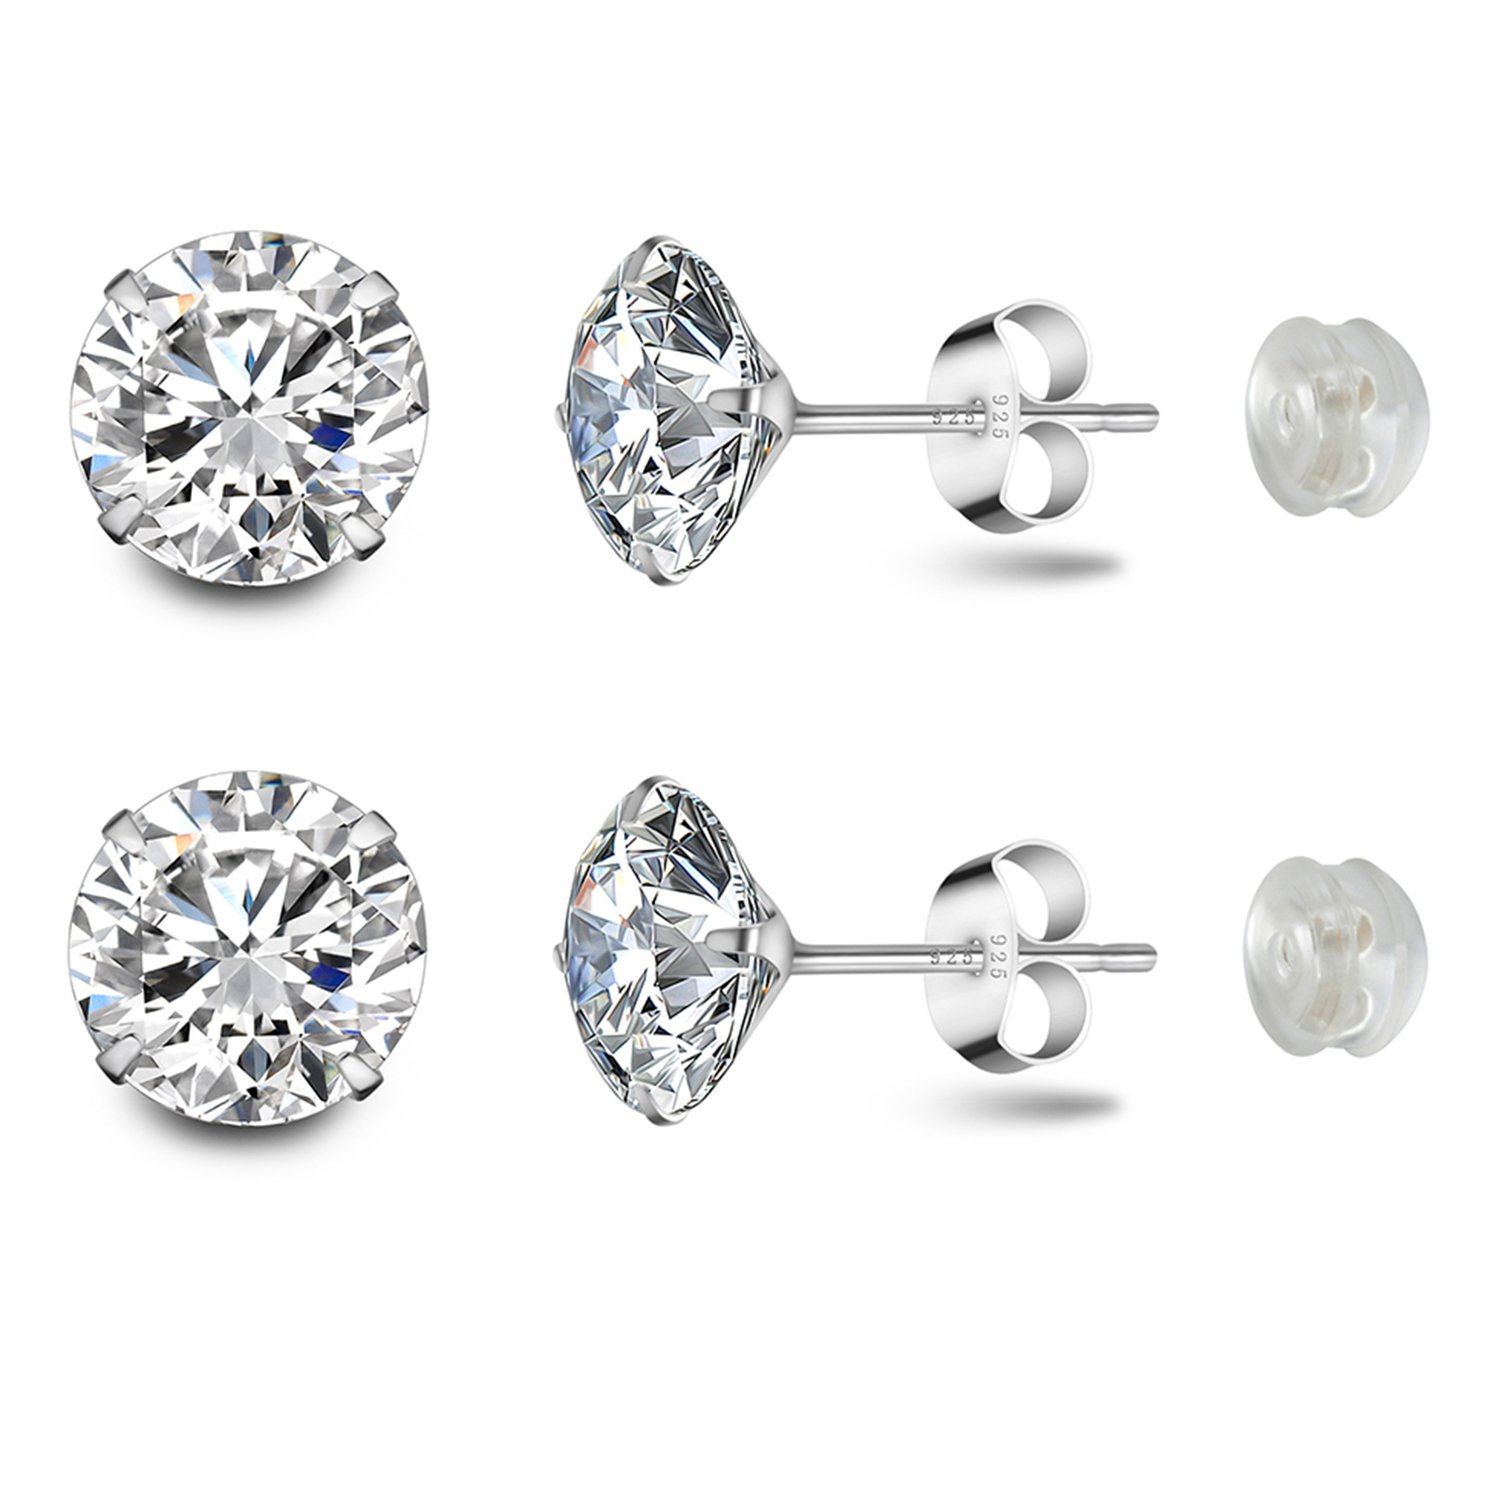 Stud Earrings Platinum Plated Sterling Silver Round Cut Cubic Zirconia 8mm 2.5 Carat Fashion Jewelry for Women & Girls's Ear Lobe with Gift Box